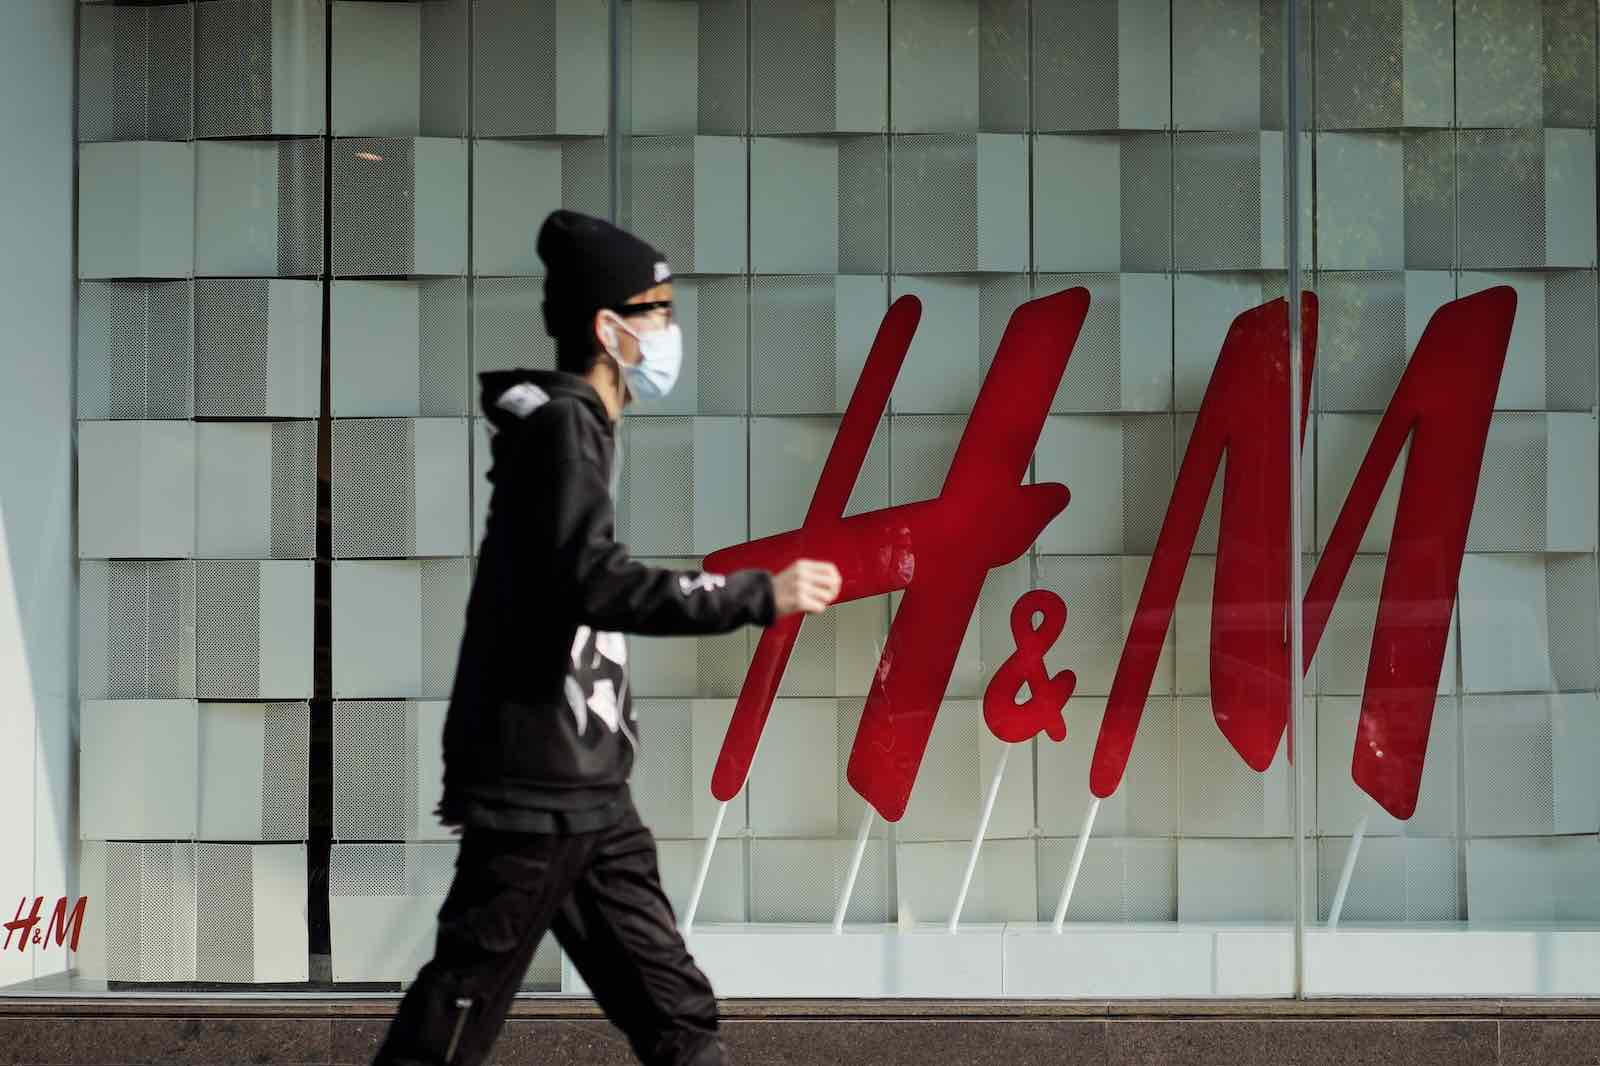 A H&M store in Kunming, China (Kang Ping/China News Service via Getty Images)